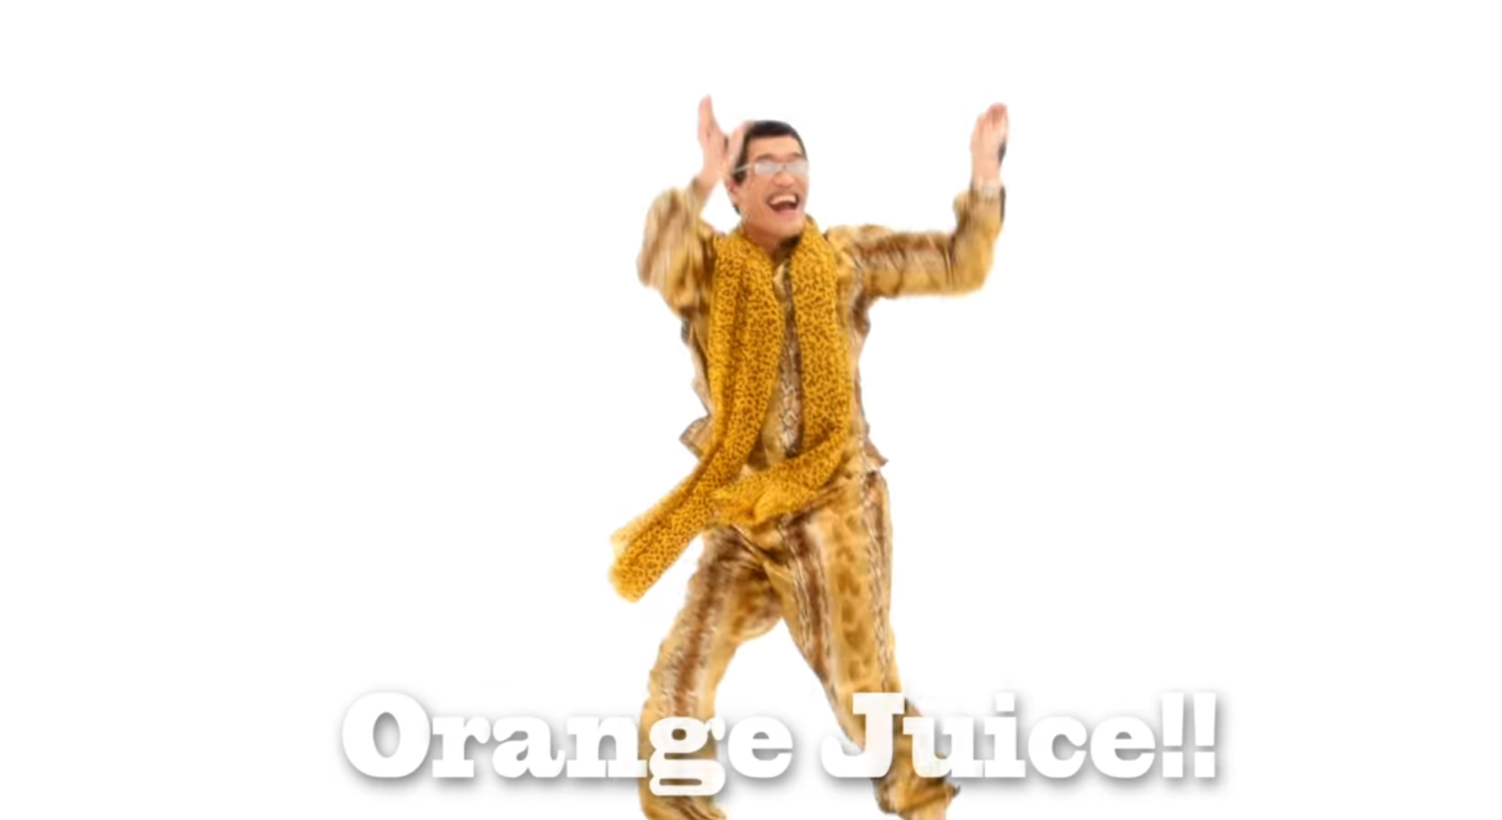 The PPAP Guy has a New Song and Oh God, Please Make it Stop